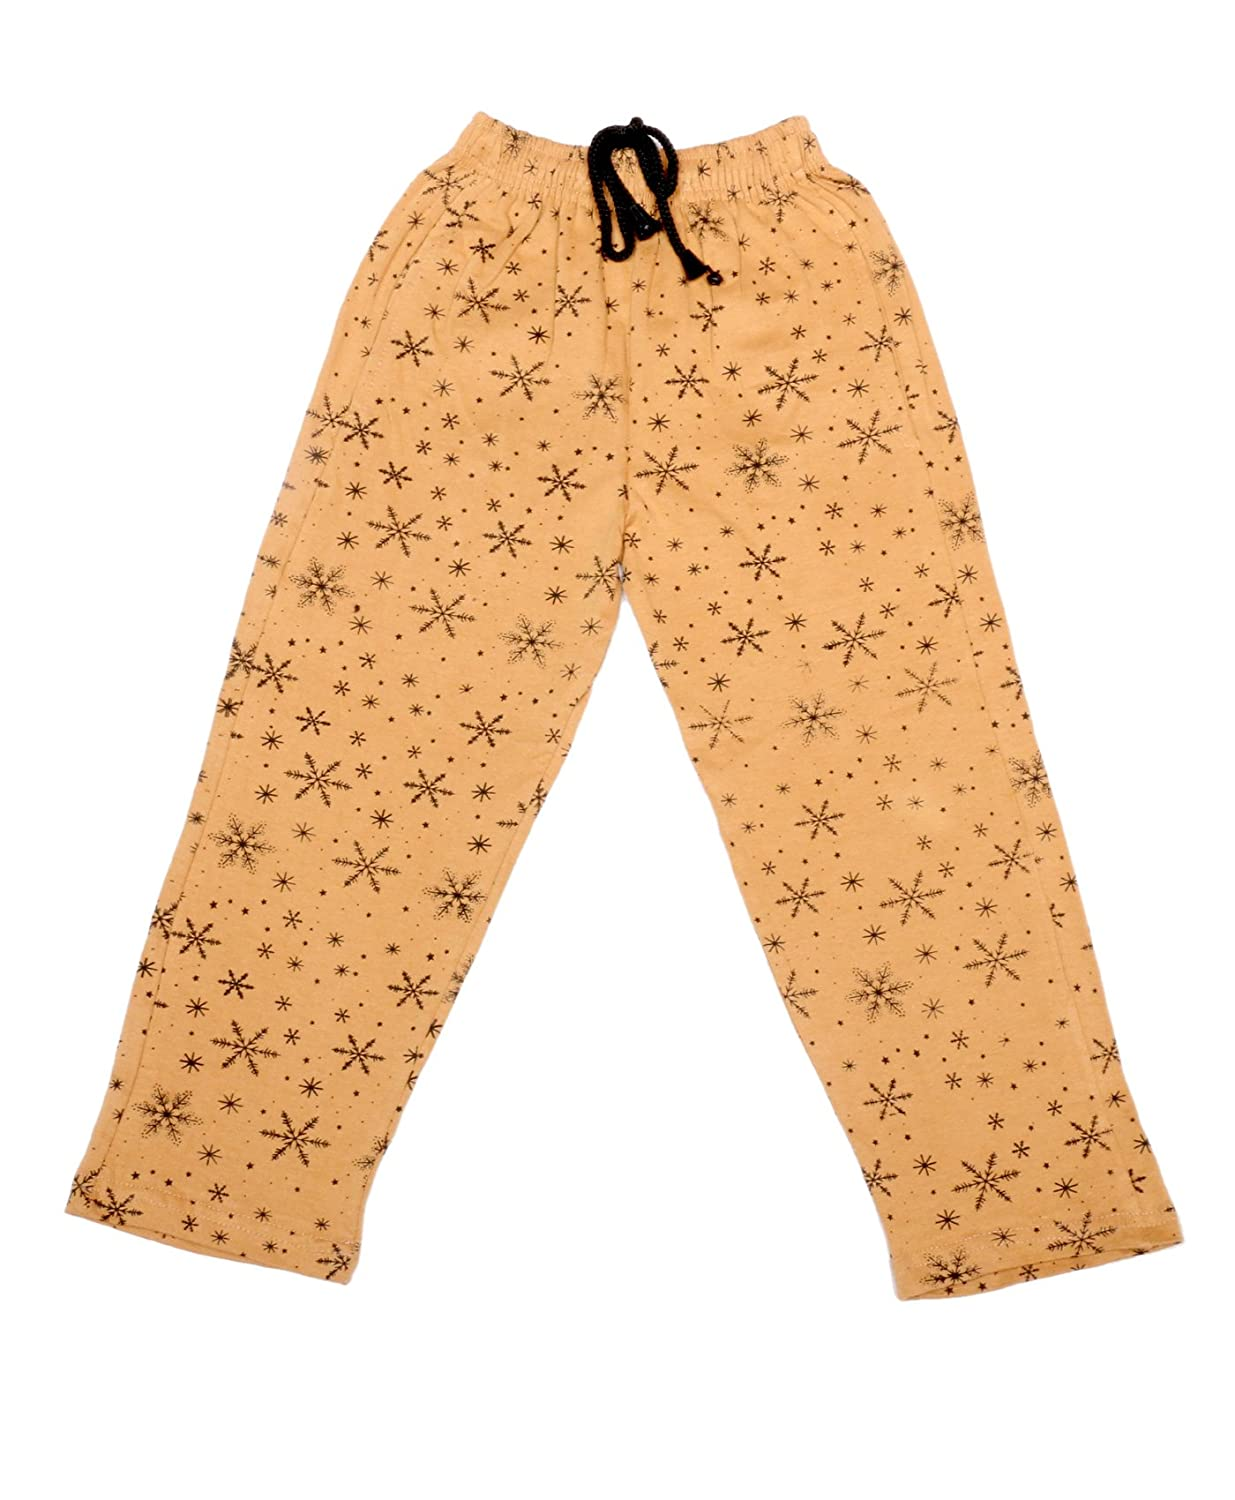 Pack Of 2 Indistar Boys Premium Cotton Full Length Lower//Track Pants//Pyjamas With 2 Open Pockets